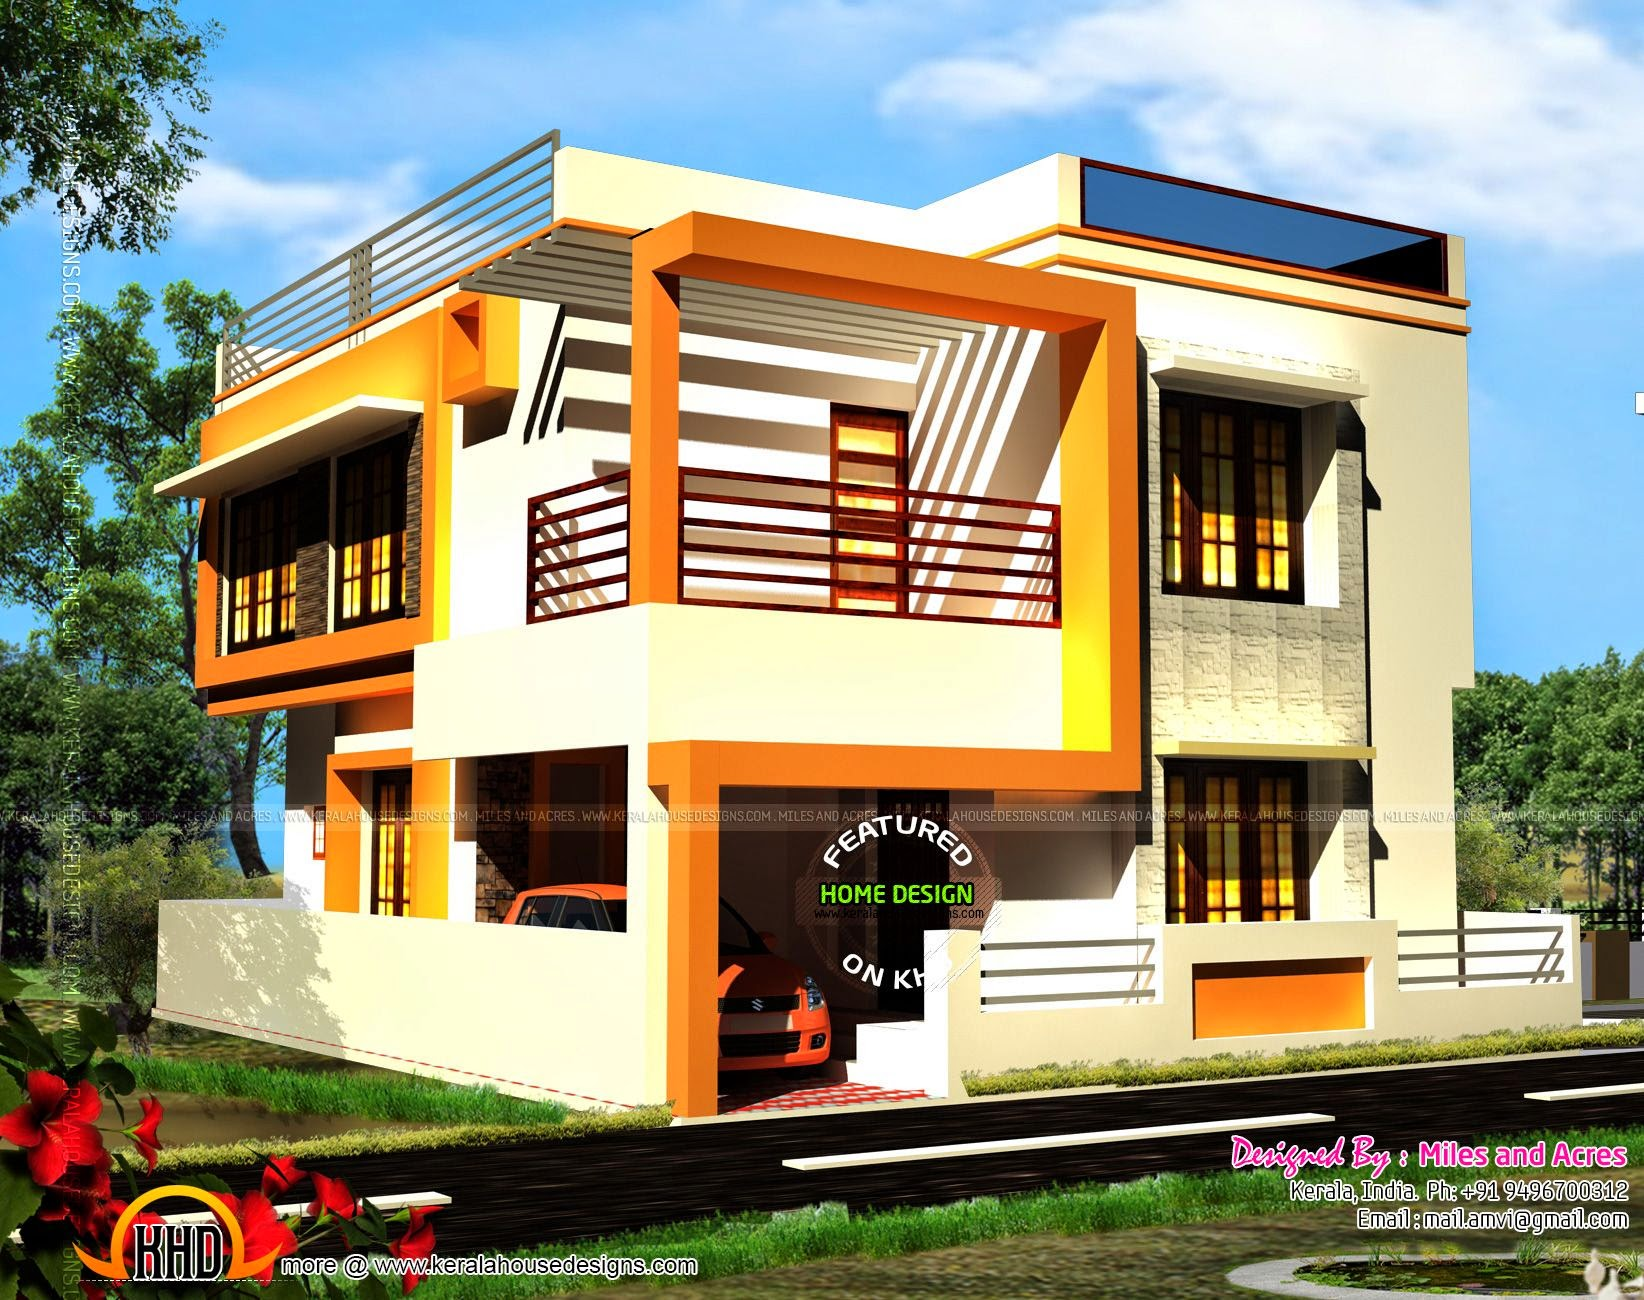 House exterior designs in contemporary style | keralahousedesigns